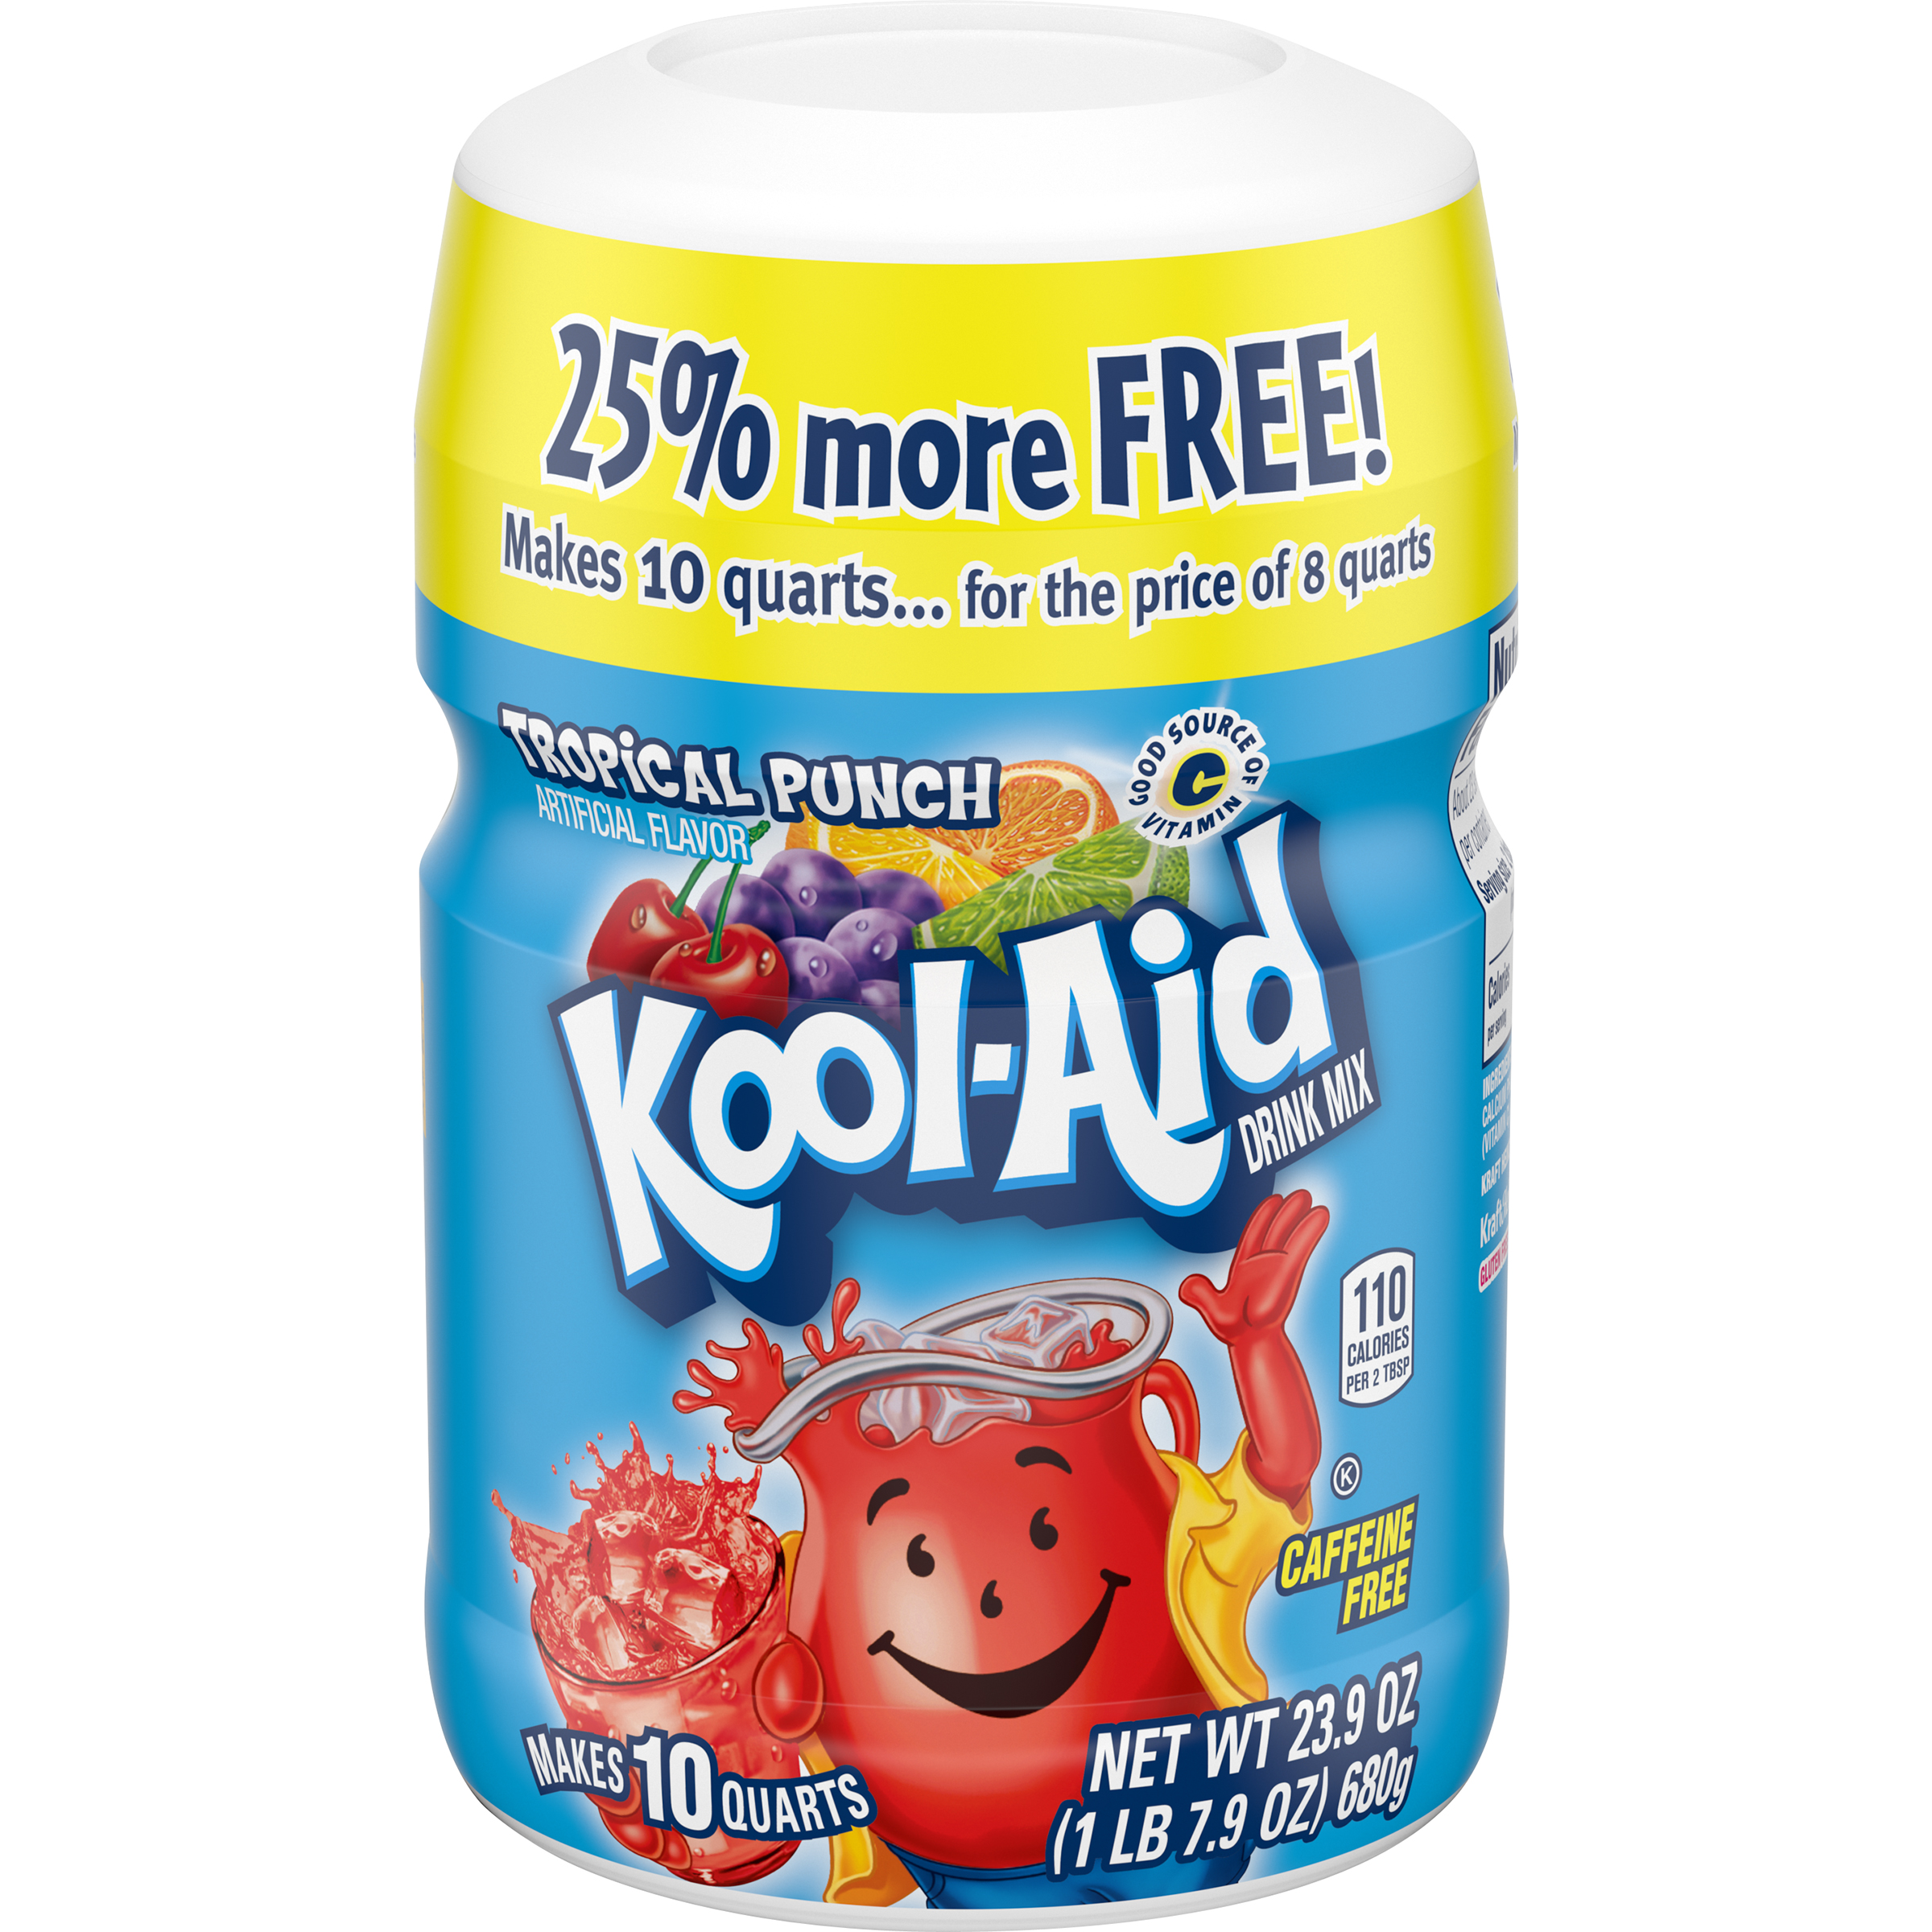 Kool-Aid Tropical Punch Drink Mix 23.9 oz. Canister image